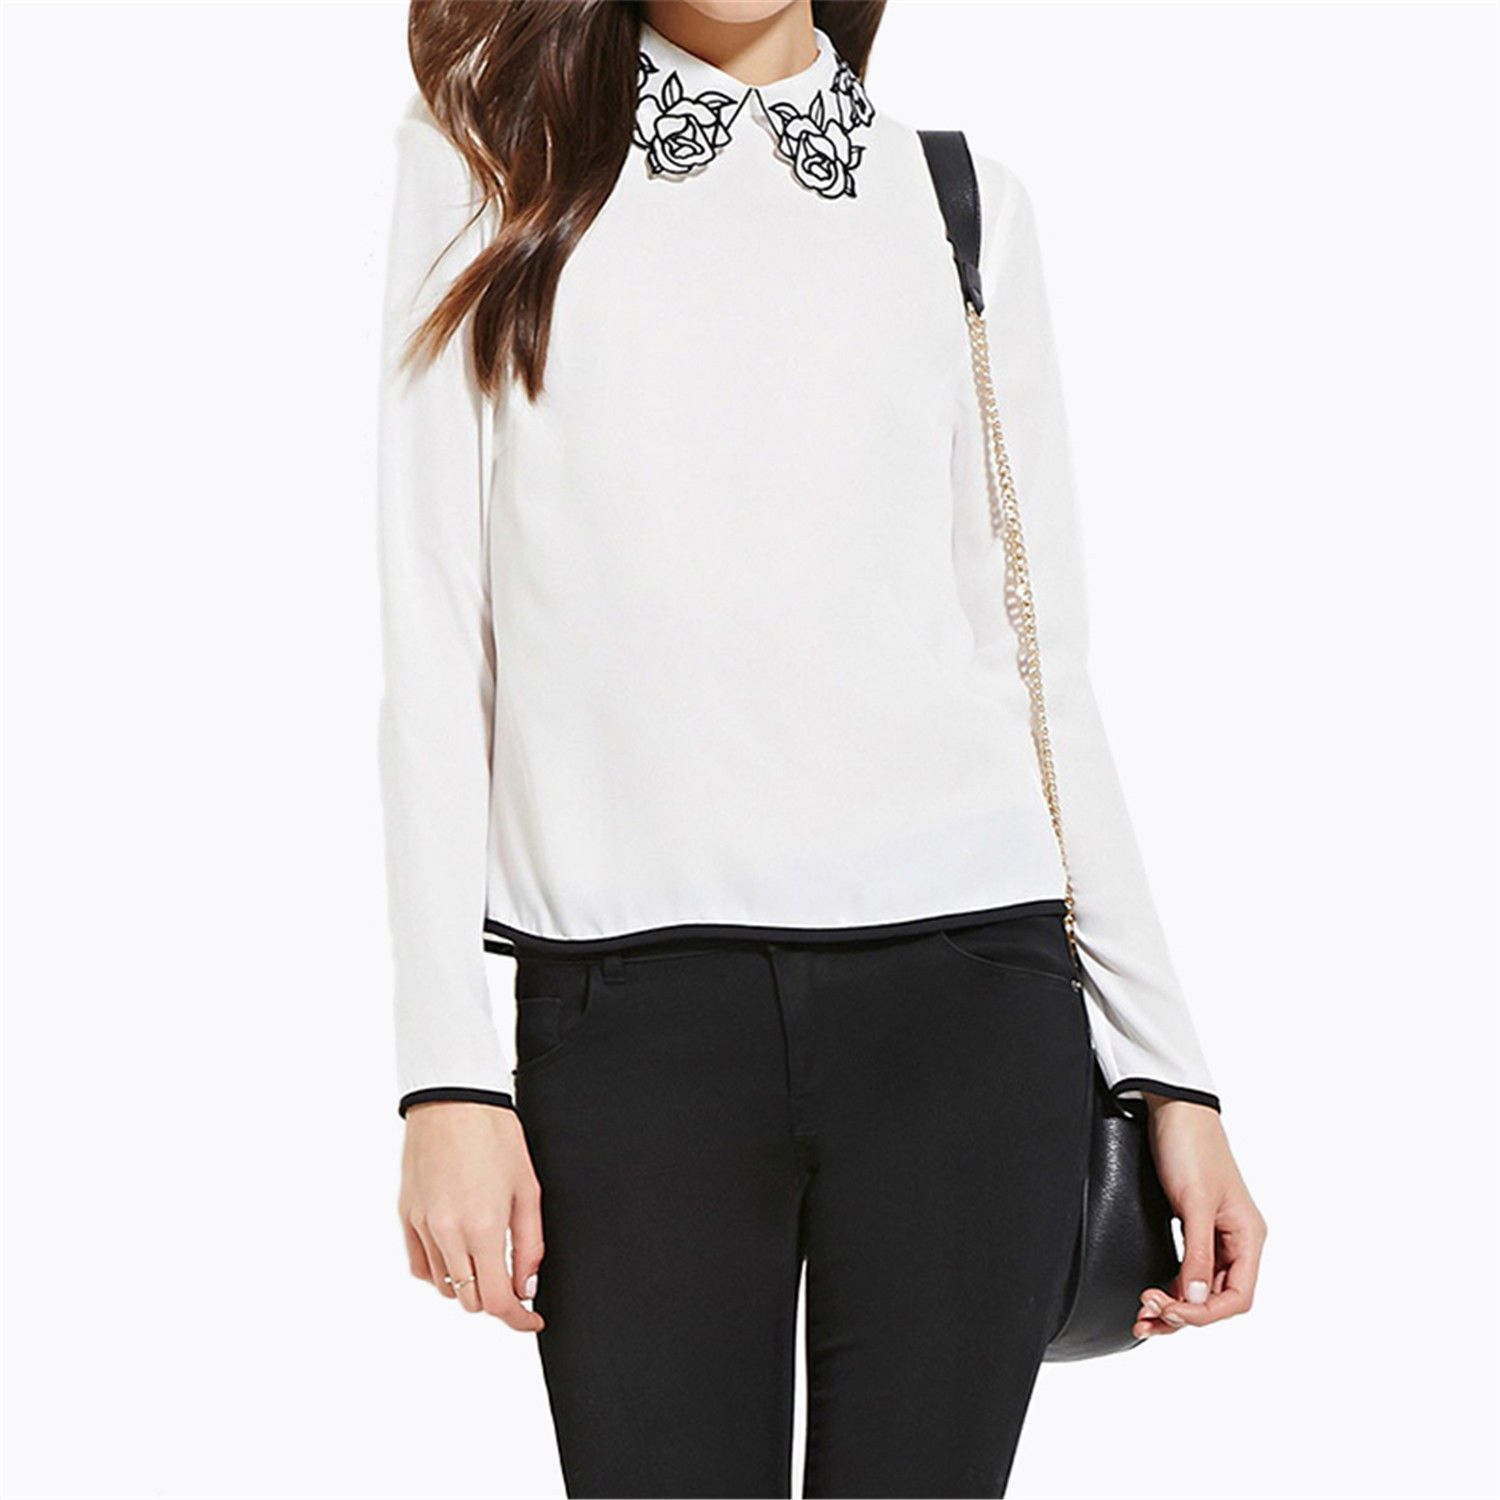 Floral Embroidered Peter Pan Collar Contrast Pullover Blouse Shirt ...